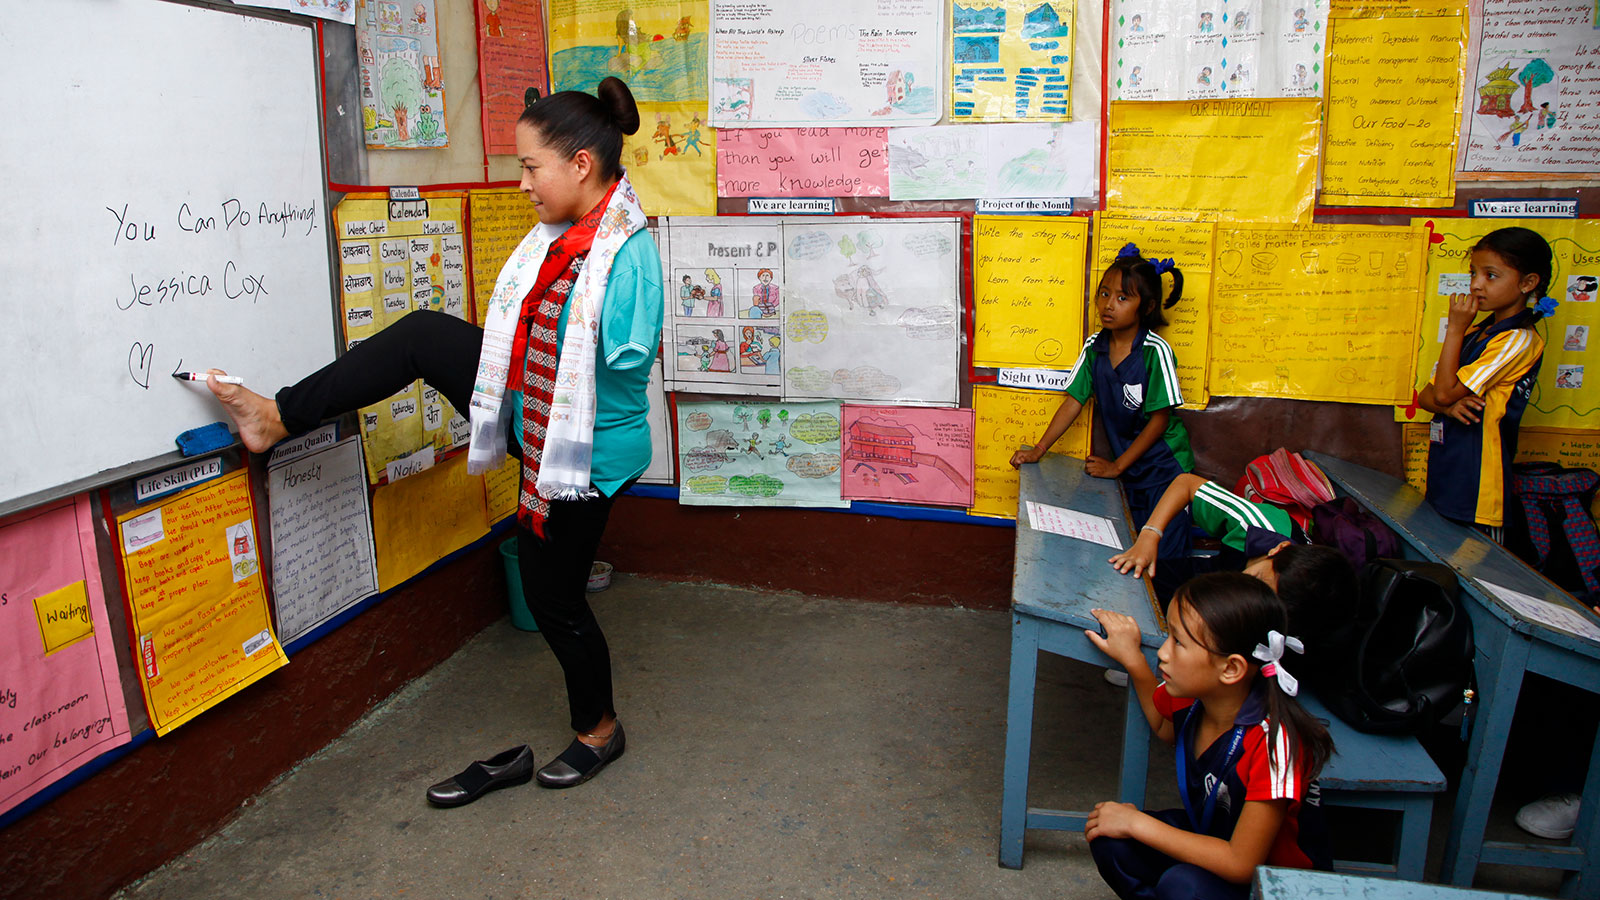 Jessica-Cox-writes-on-a-chalkboard-at-a-school-in-Nepal